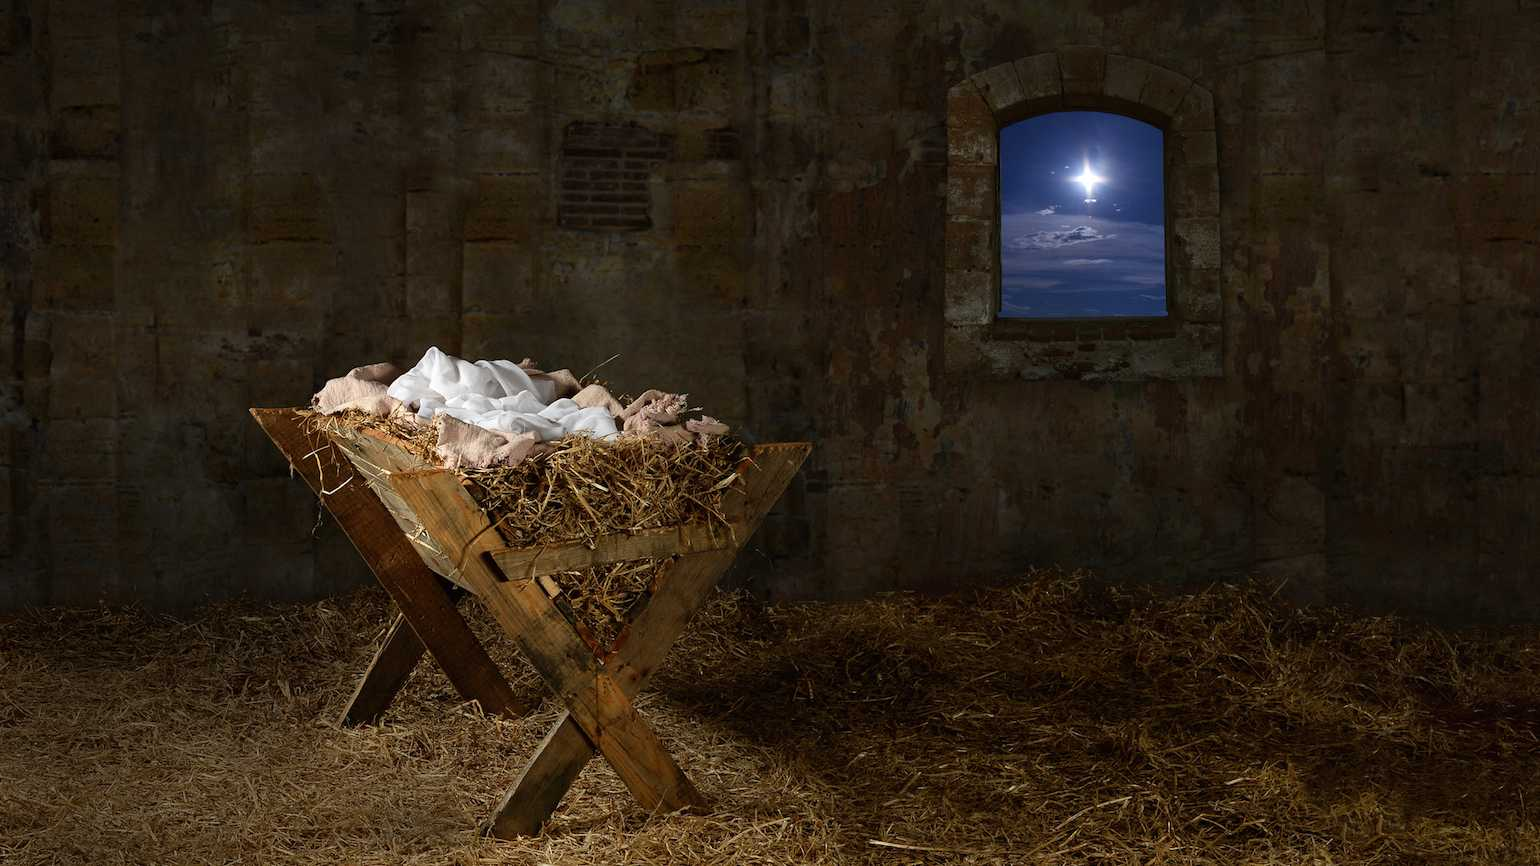 The birth of Jesus, the spread of light and hope at Christmas